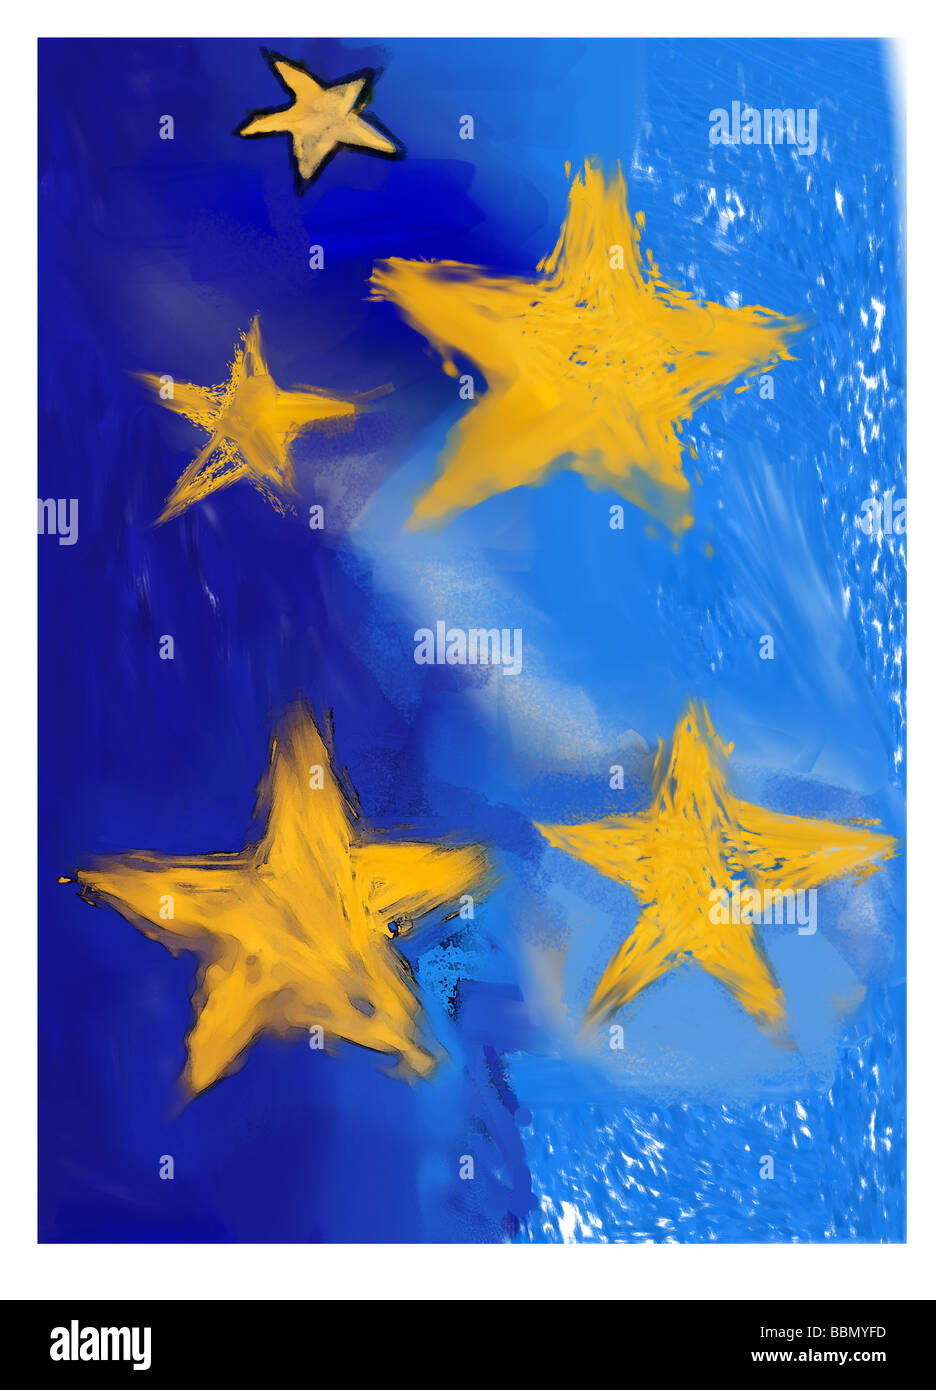 illustration of stars on a blue background - Stock Image